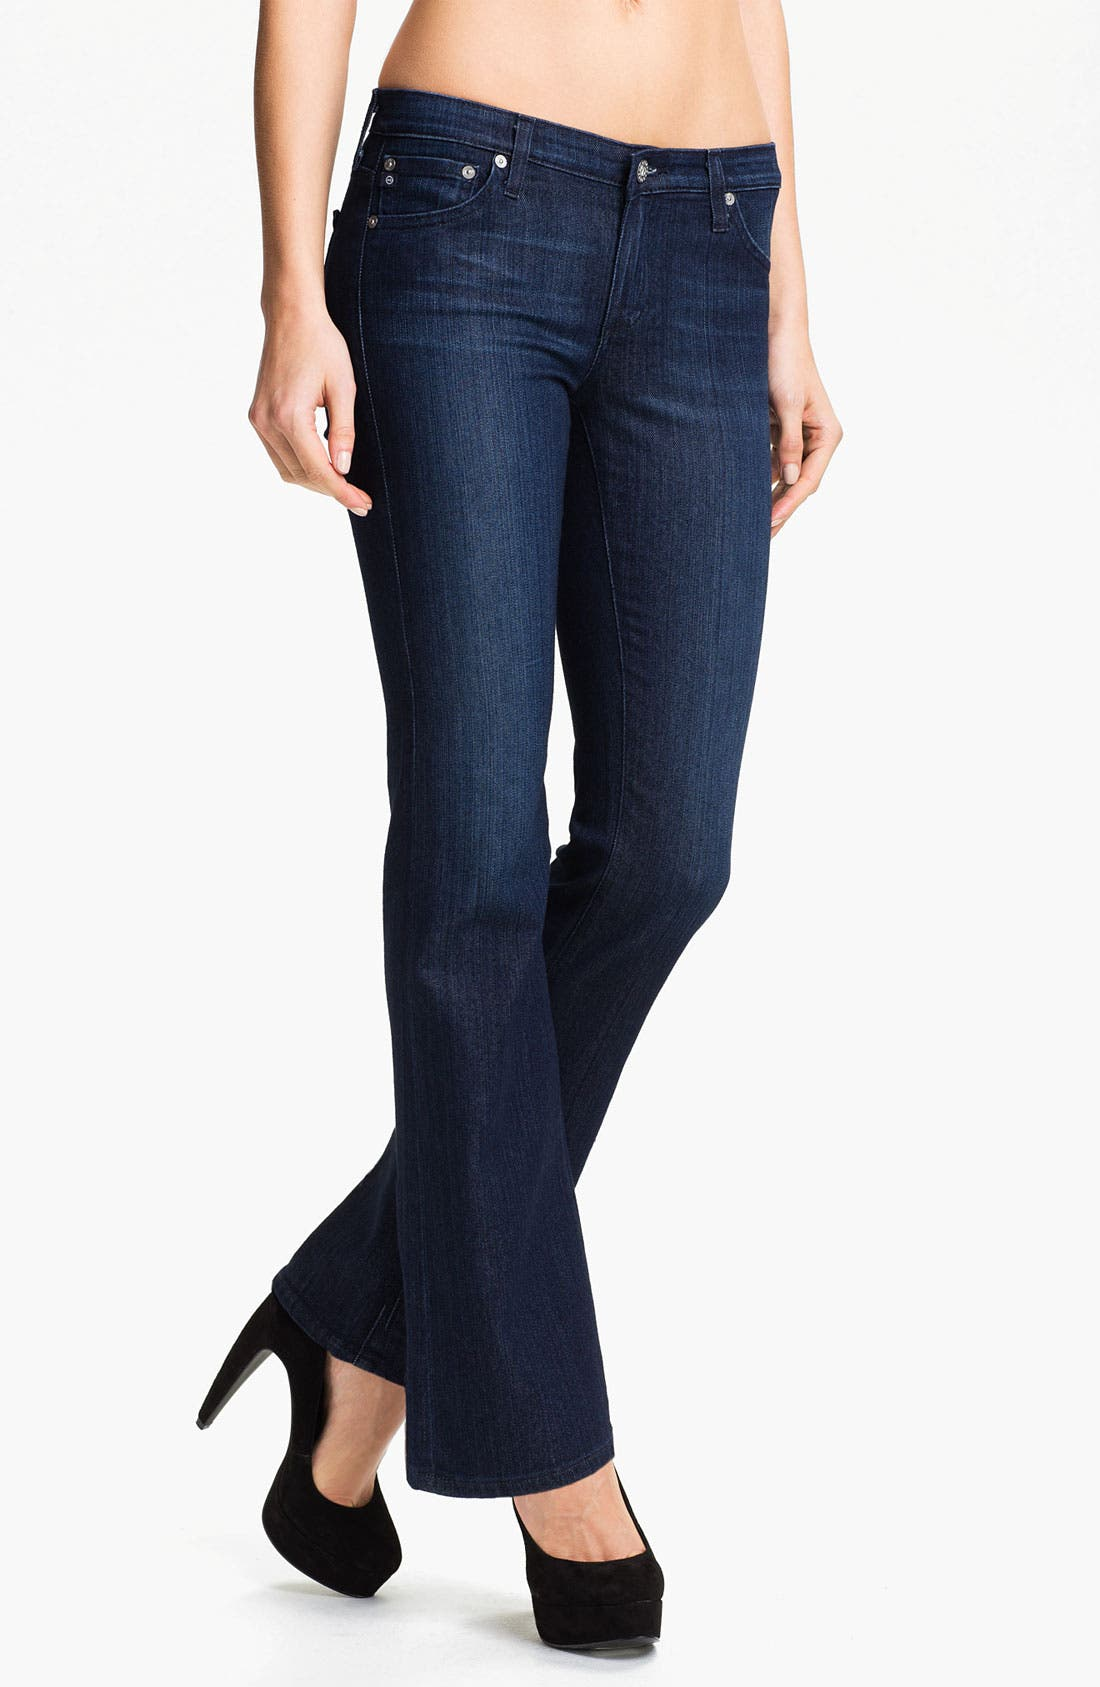 Alternate Image 1 Selected - AG Jeans 'Angelina' Petite Bootcut Jeans (Willow)